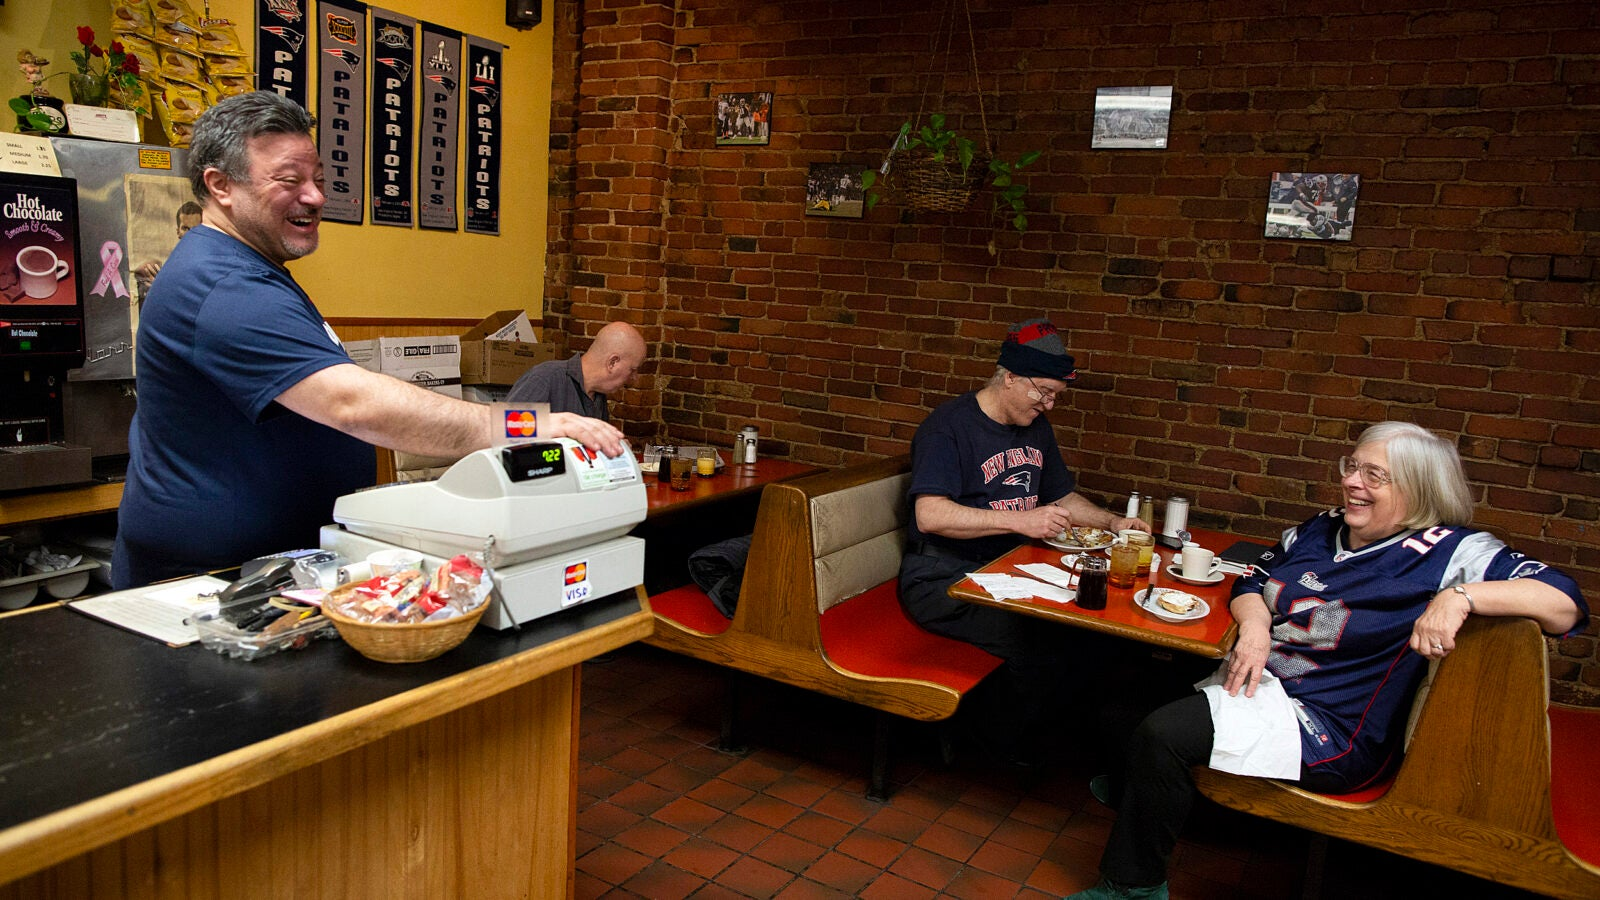 Jimmy Dres (from left) the owner of Andy's Diner in Cambridge talks football with Tom Cunningham, building manager of the Harvard University Press, and physicist Bill Skocpol and his wife Theda Skocpol, Harvard's Victor S. Thomas Professor of Government and Sociology. The restaurant is a local favorite for a group of early-rising fans who love Monday-morning quarterbacking.